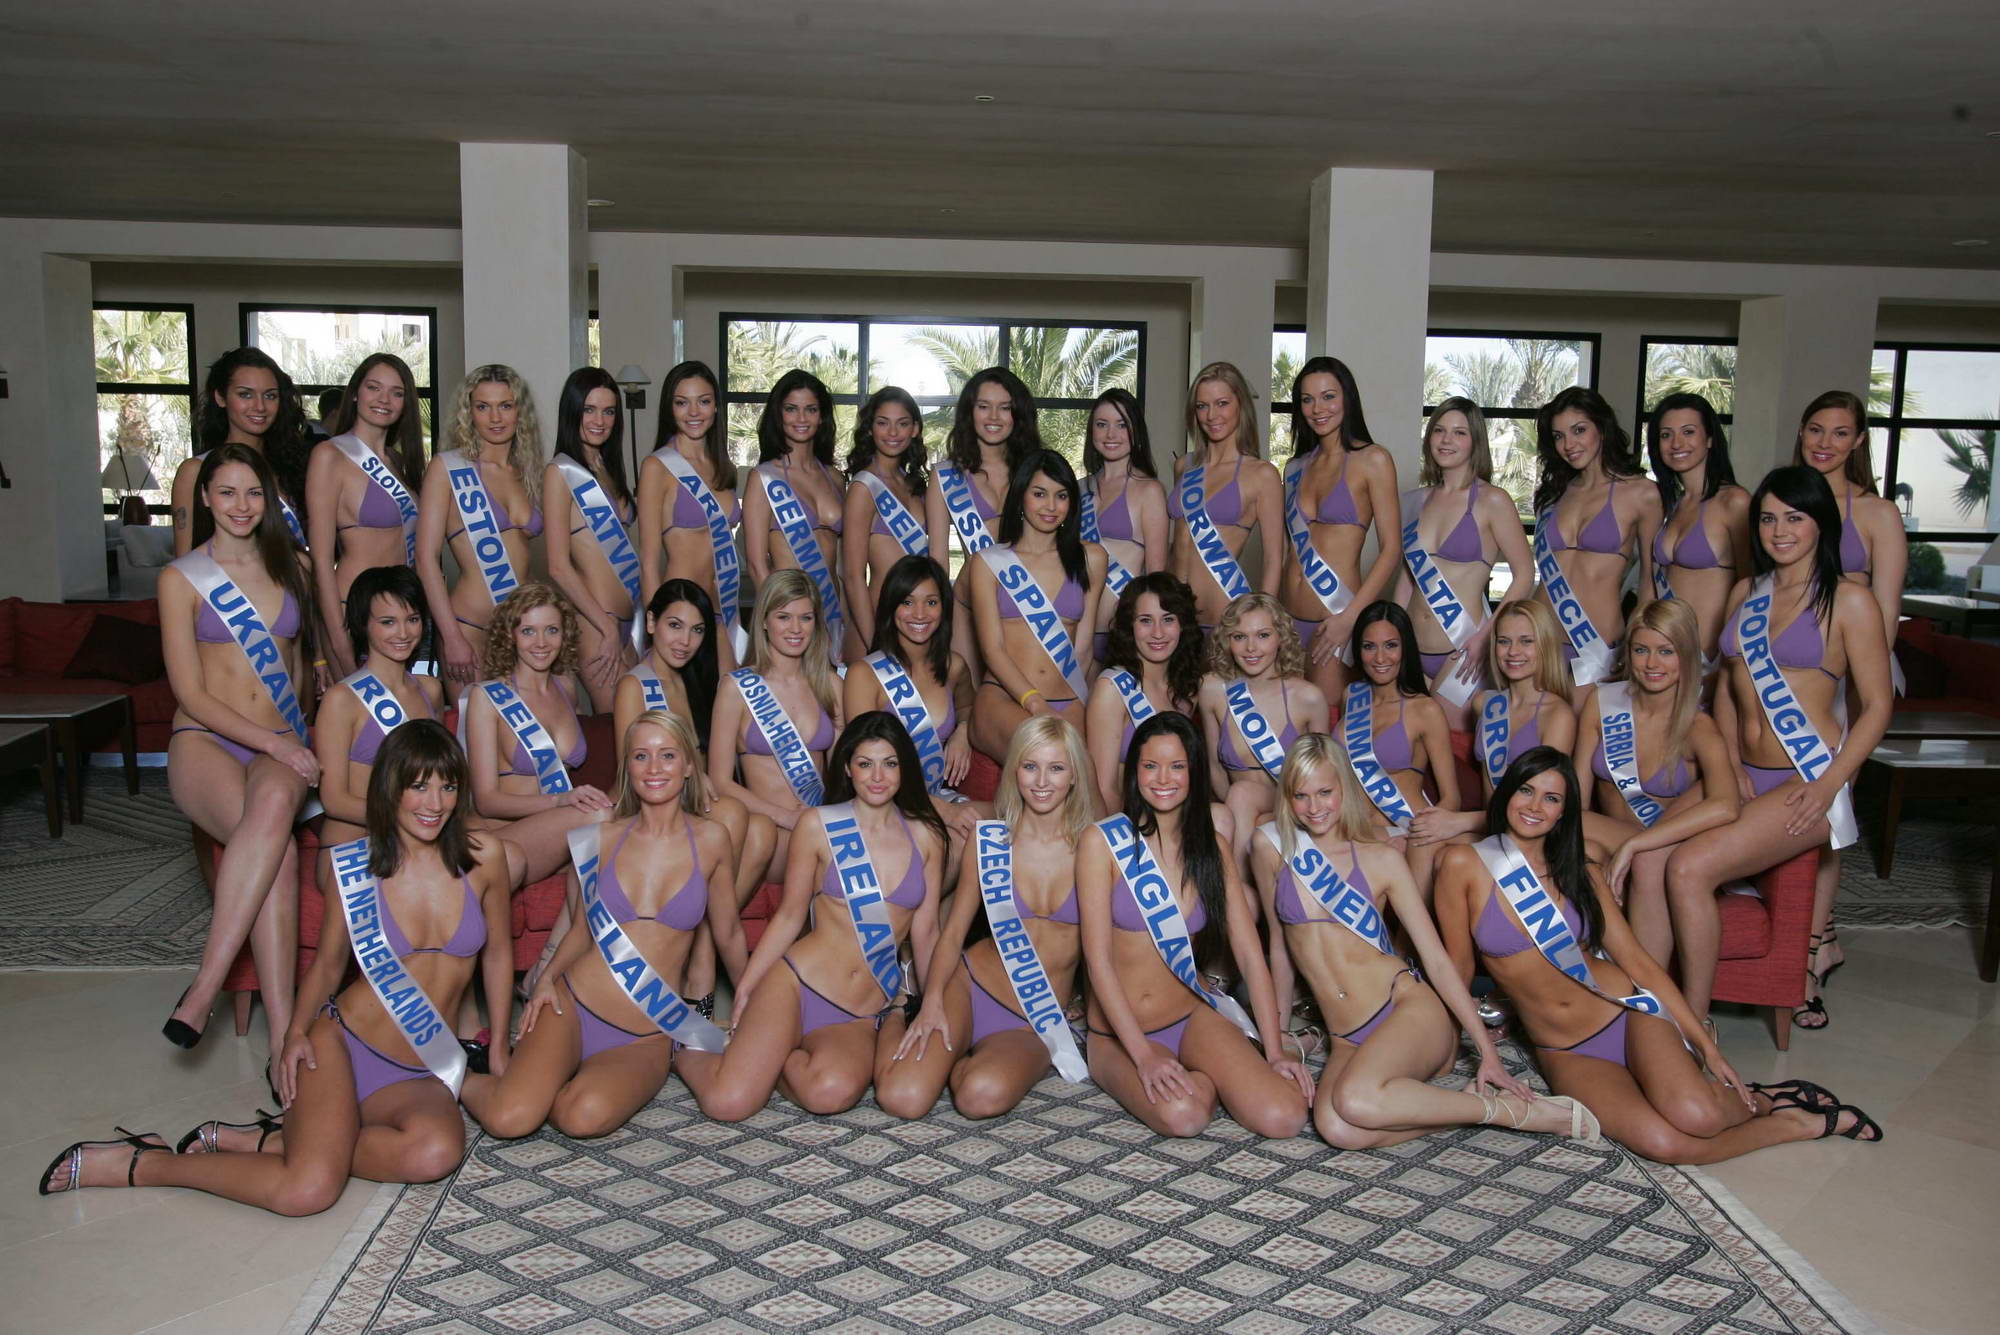 Miss Europe 2005